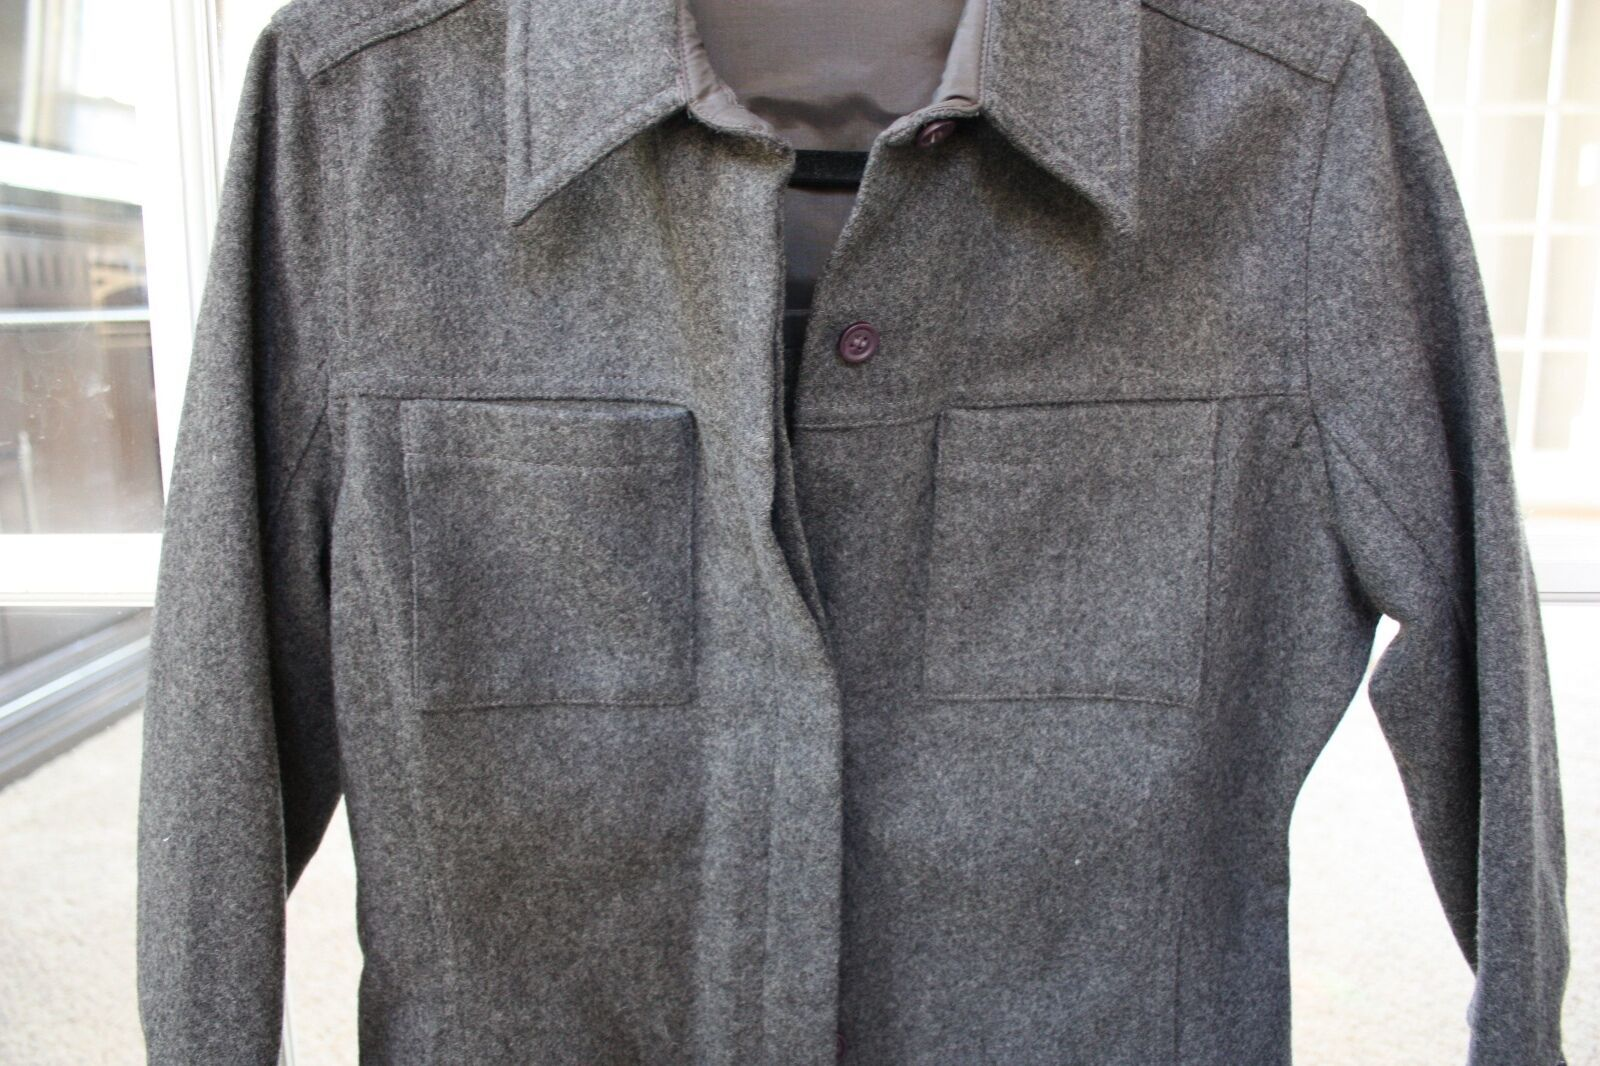 Express World Gray Wool Jacket Size 7/8 Brand New w/ Tags Style 1021